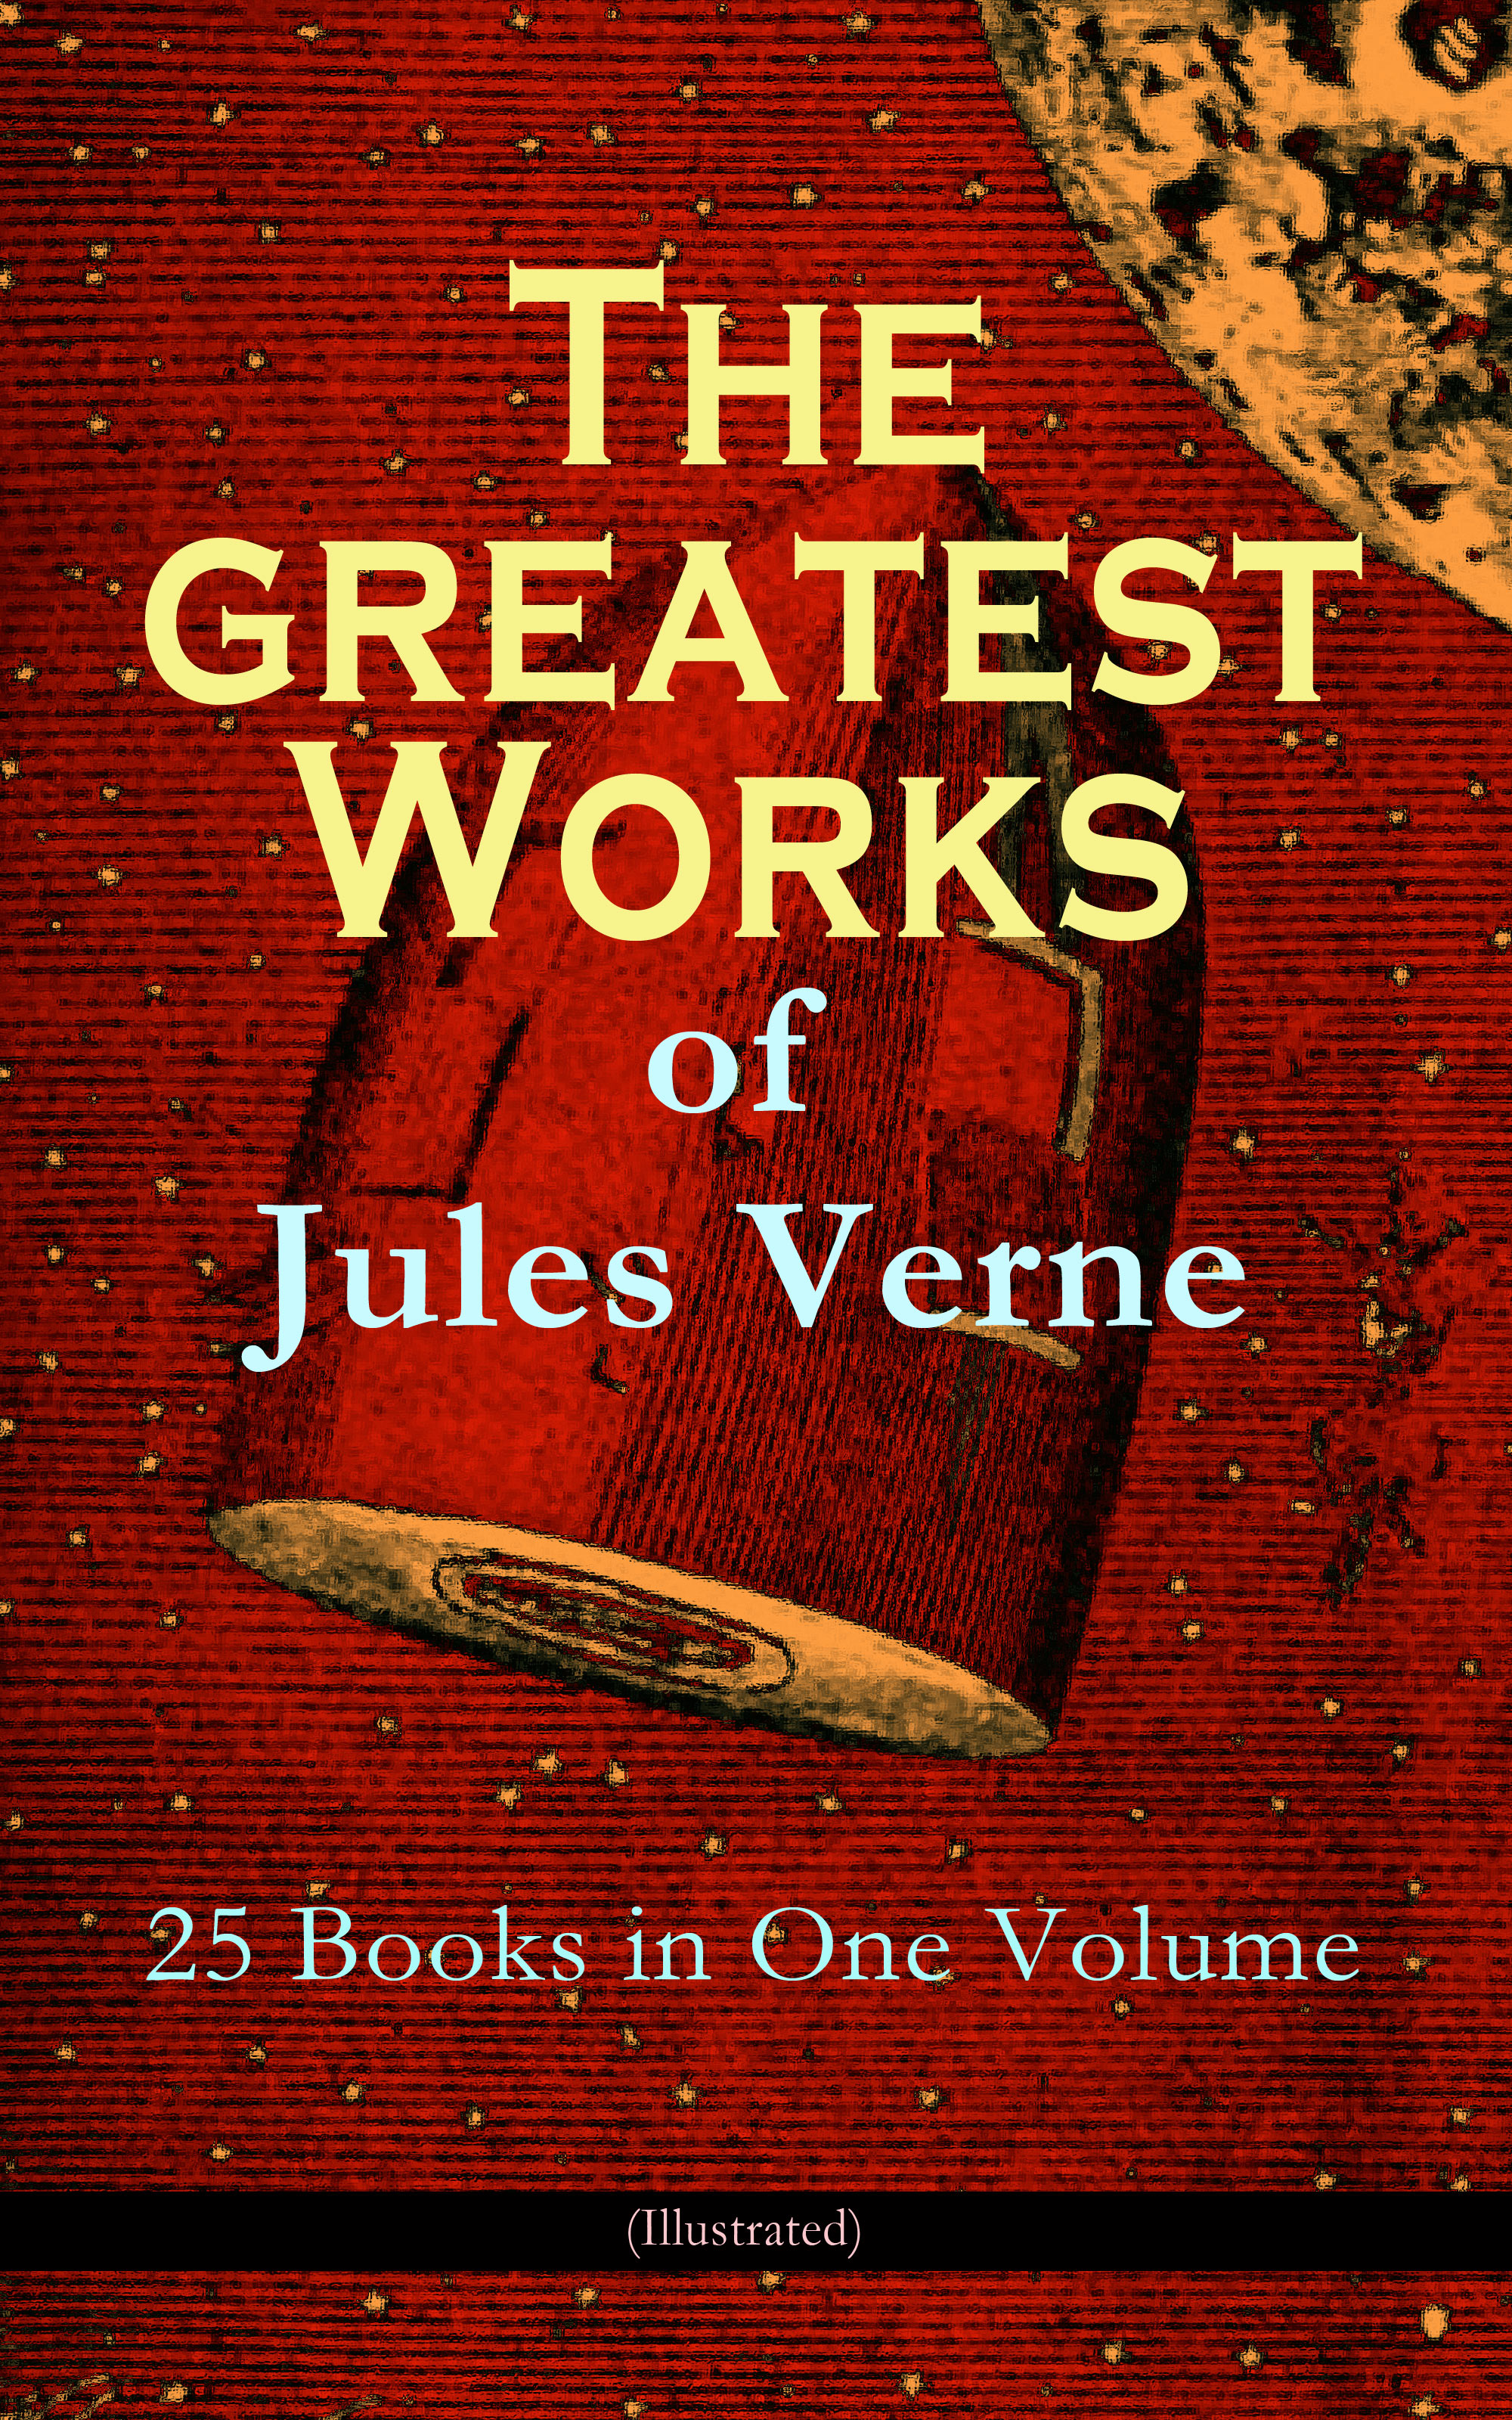 цена Жюль Верн The Greatest Works of Jules Verne: 25 Books in One Volume (Illustrated)